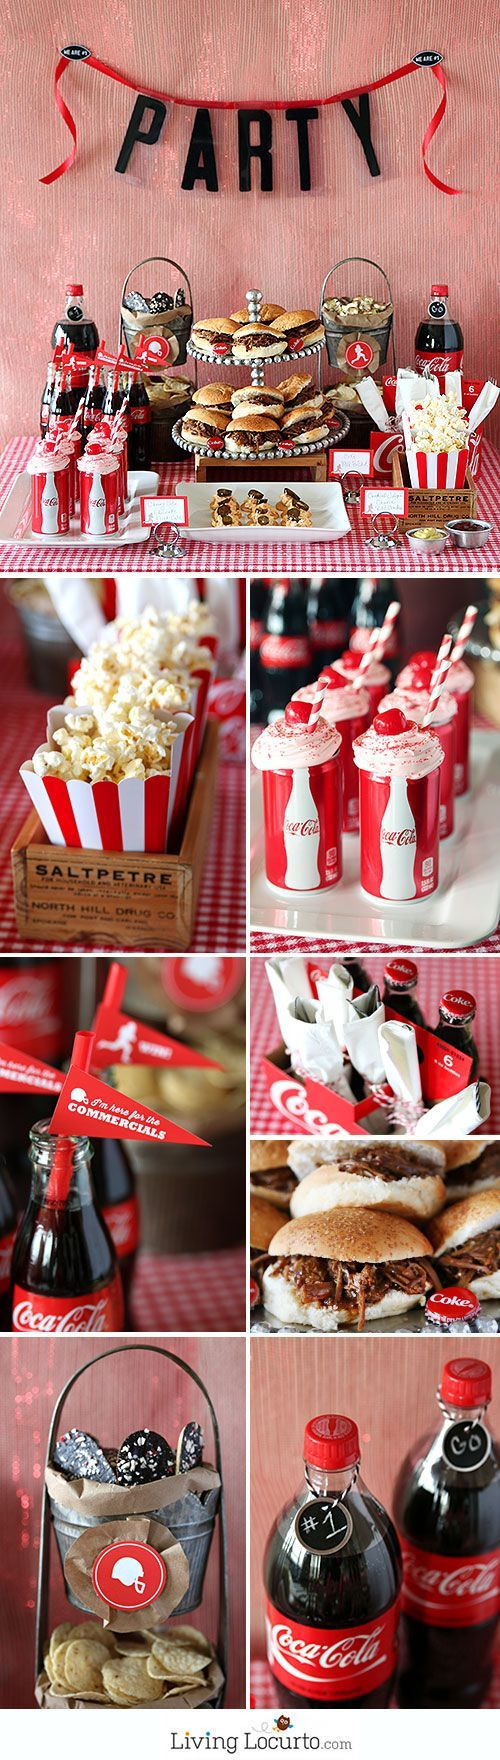 Cherry Coke Float Chocoalte Cupcakes Recipe with Free Football Party Printables. Such fun party ideas! LivingLocurto.com